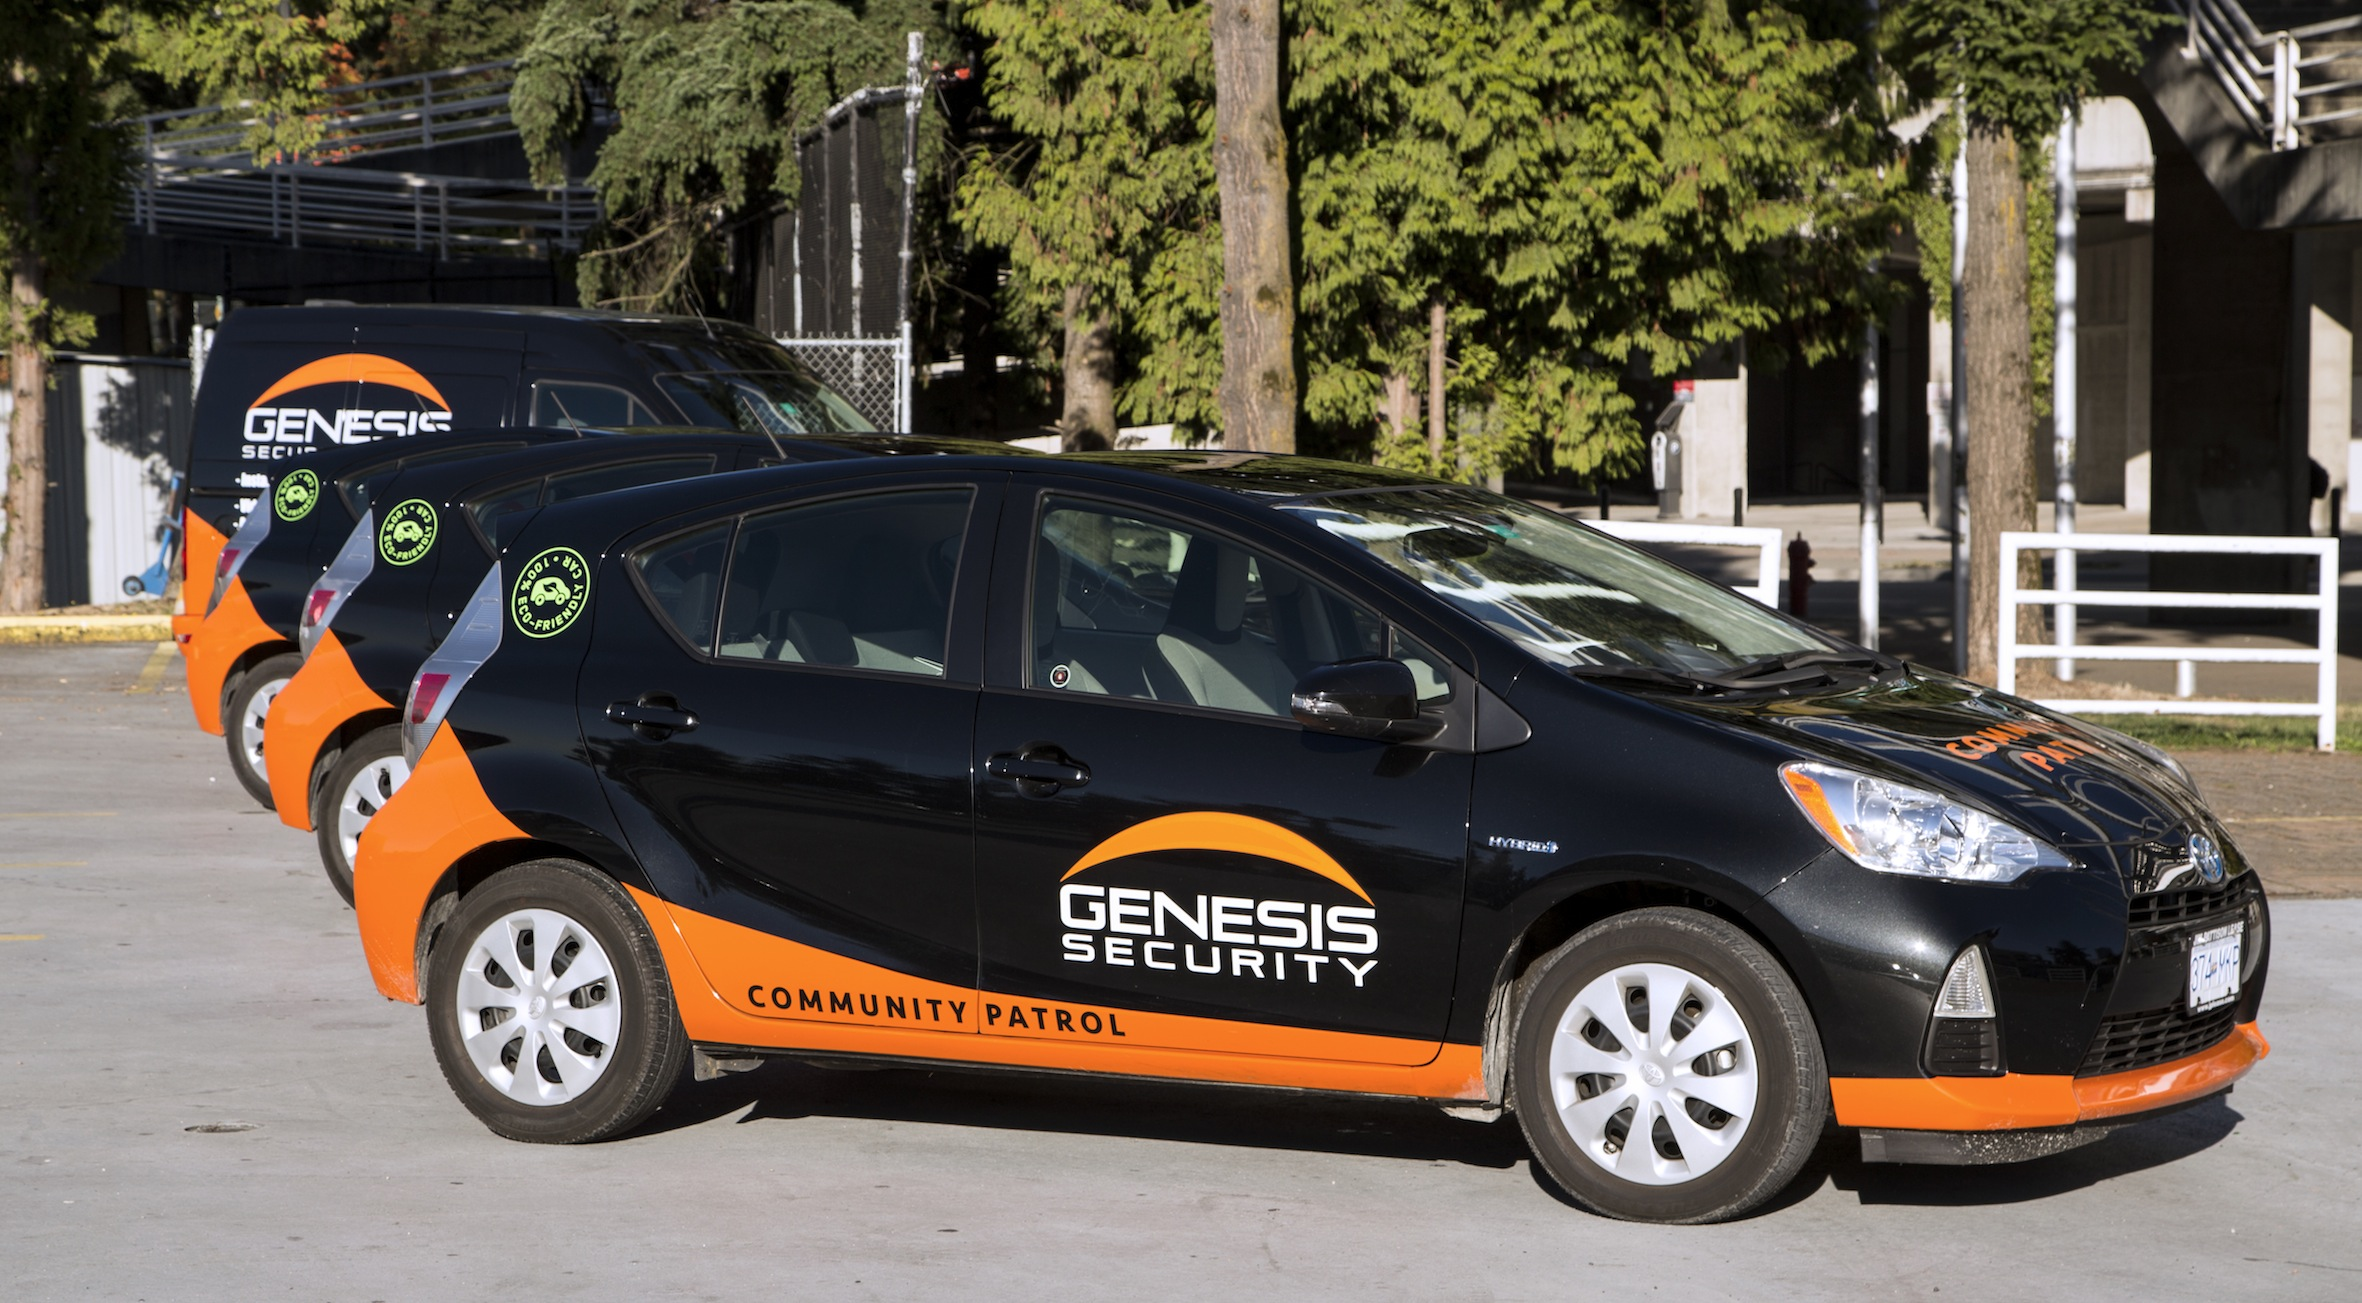 Genesis Security Renews Its Community Patrol Fleet and Stays Eco-Friendly